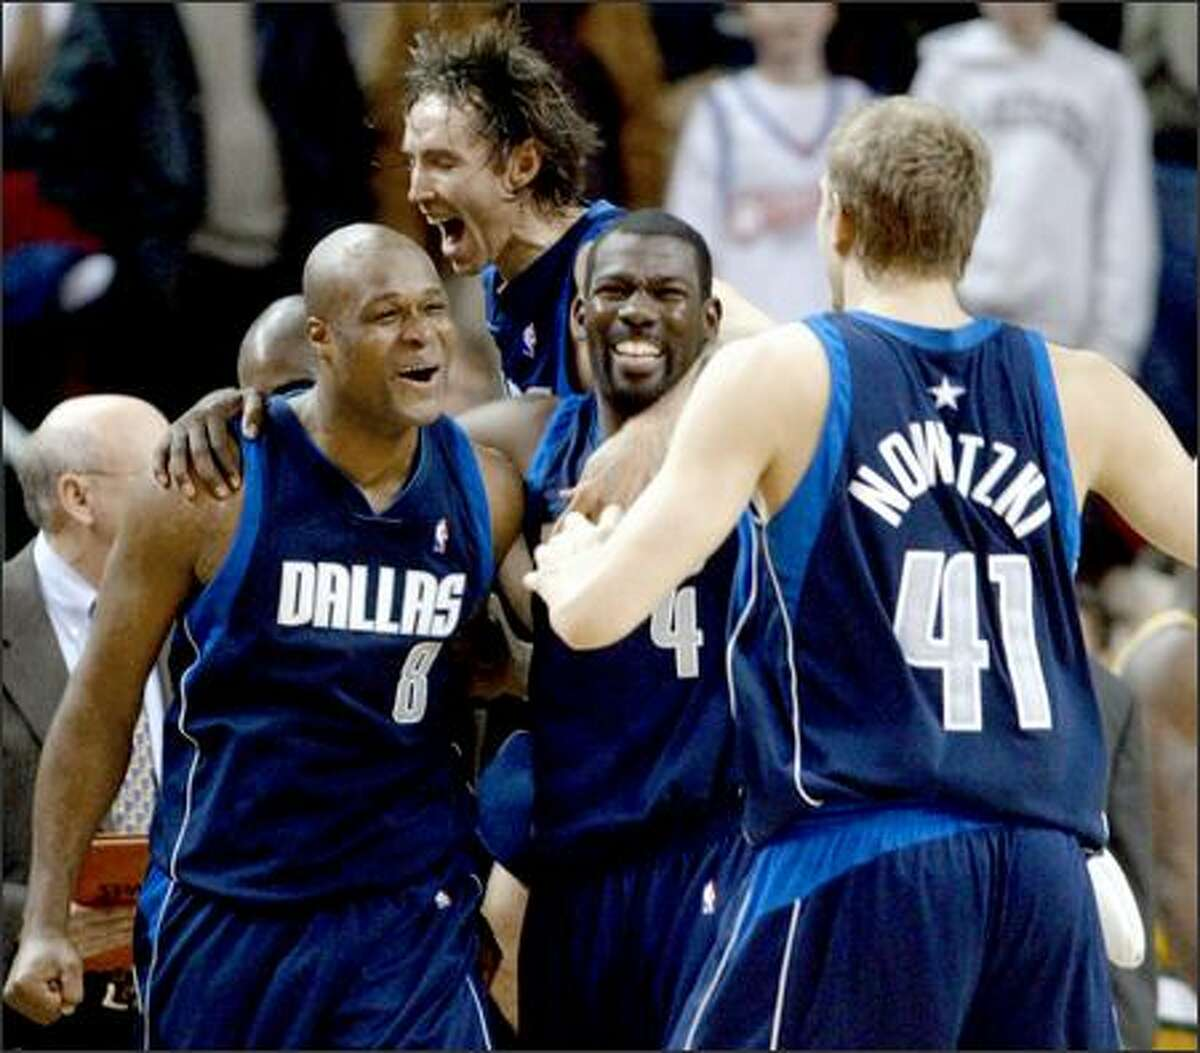 Dallas Mavericks players celebrate after Antoine Walker, left, made a last-second shot to win the game. Joining the party are Steve Nash, top, Michael Finley, center, and Dirk Nowitzki.